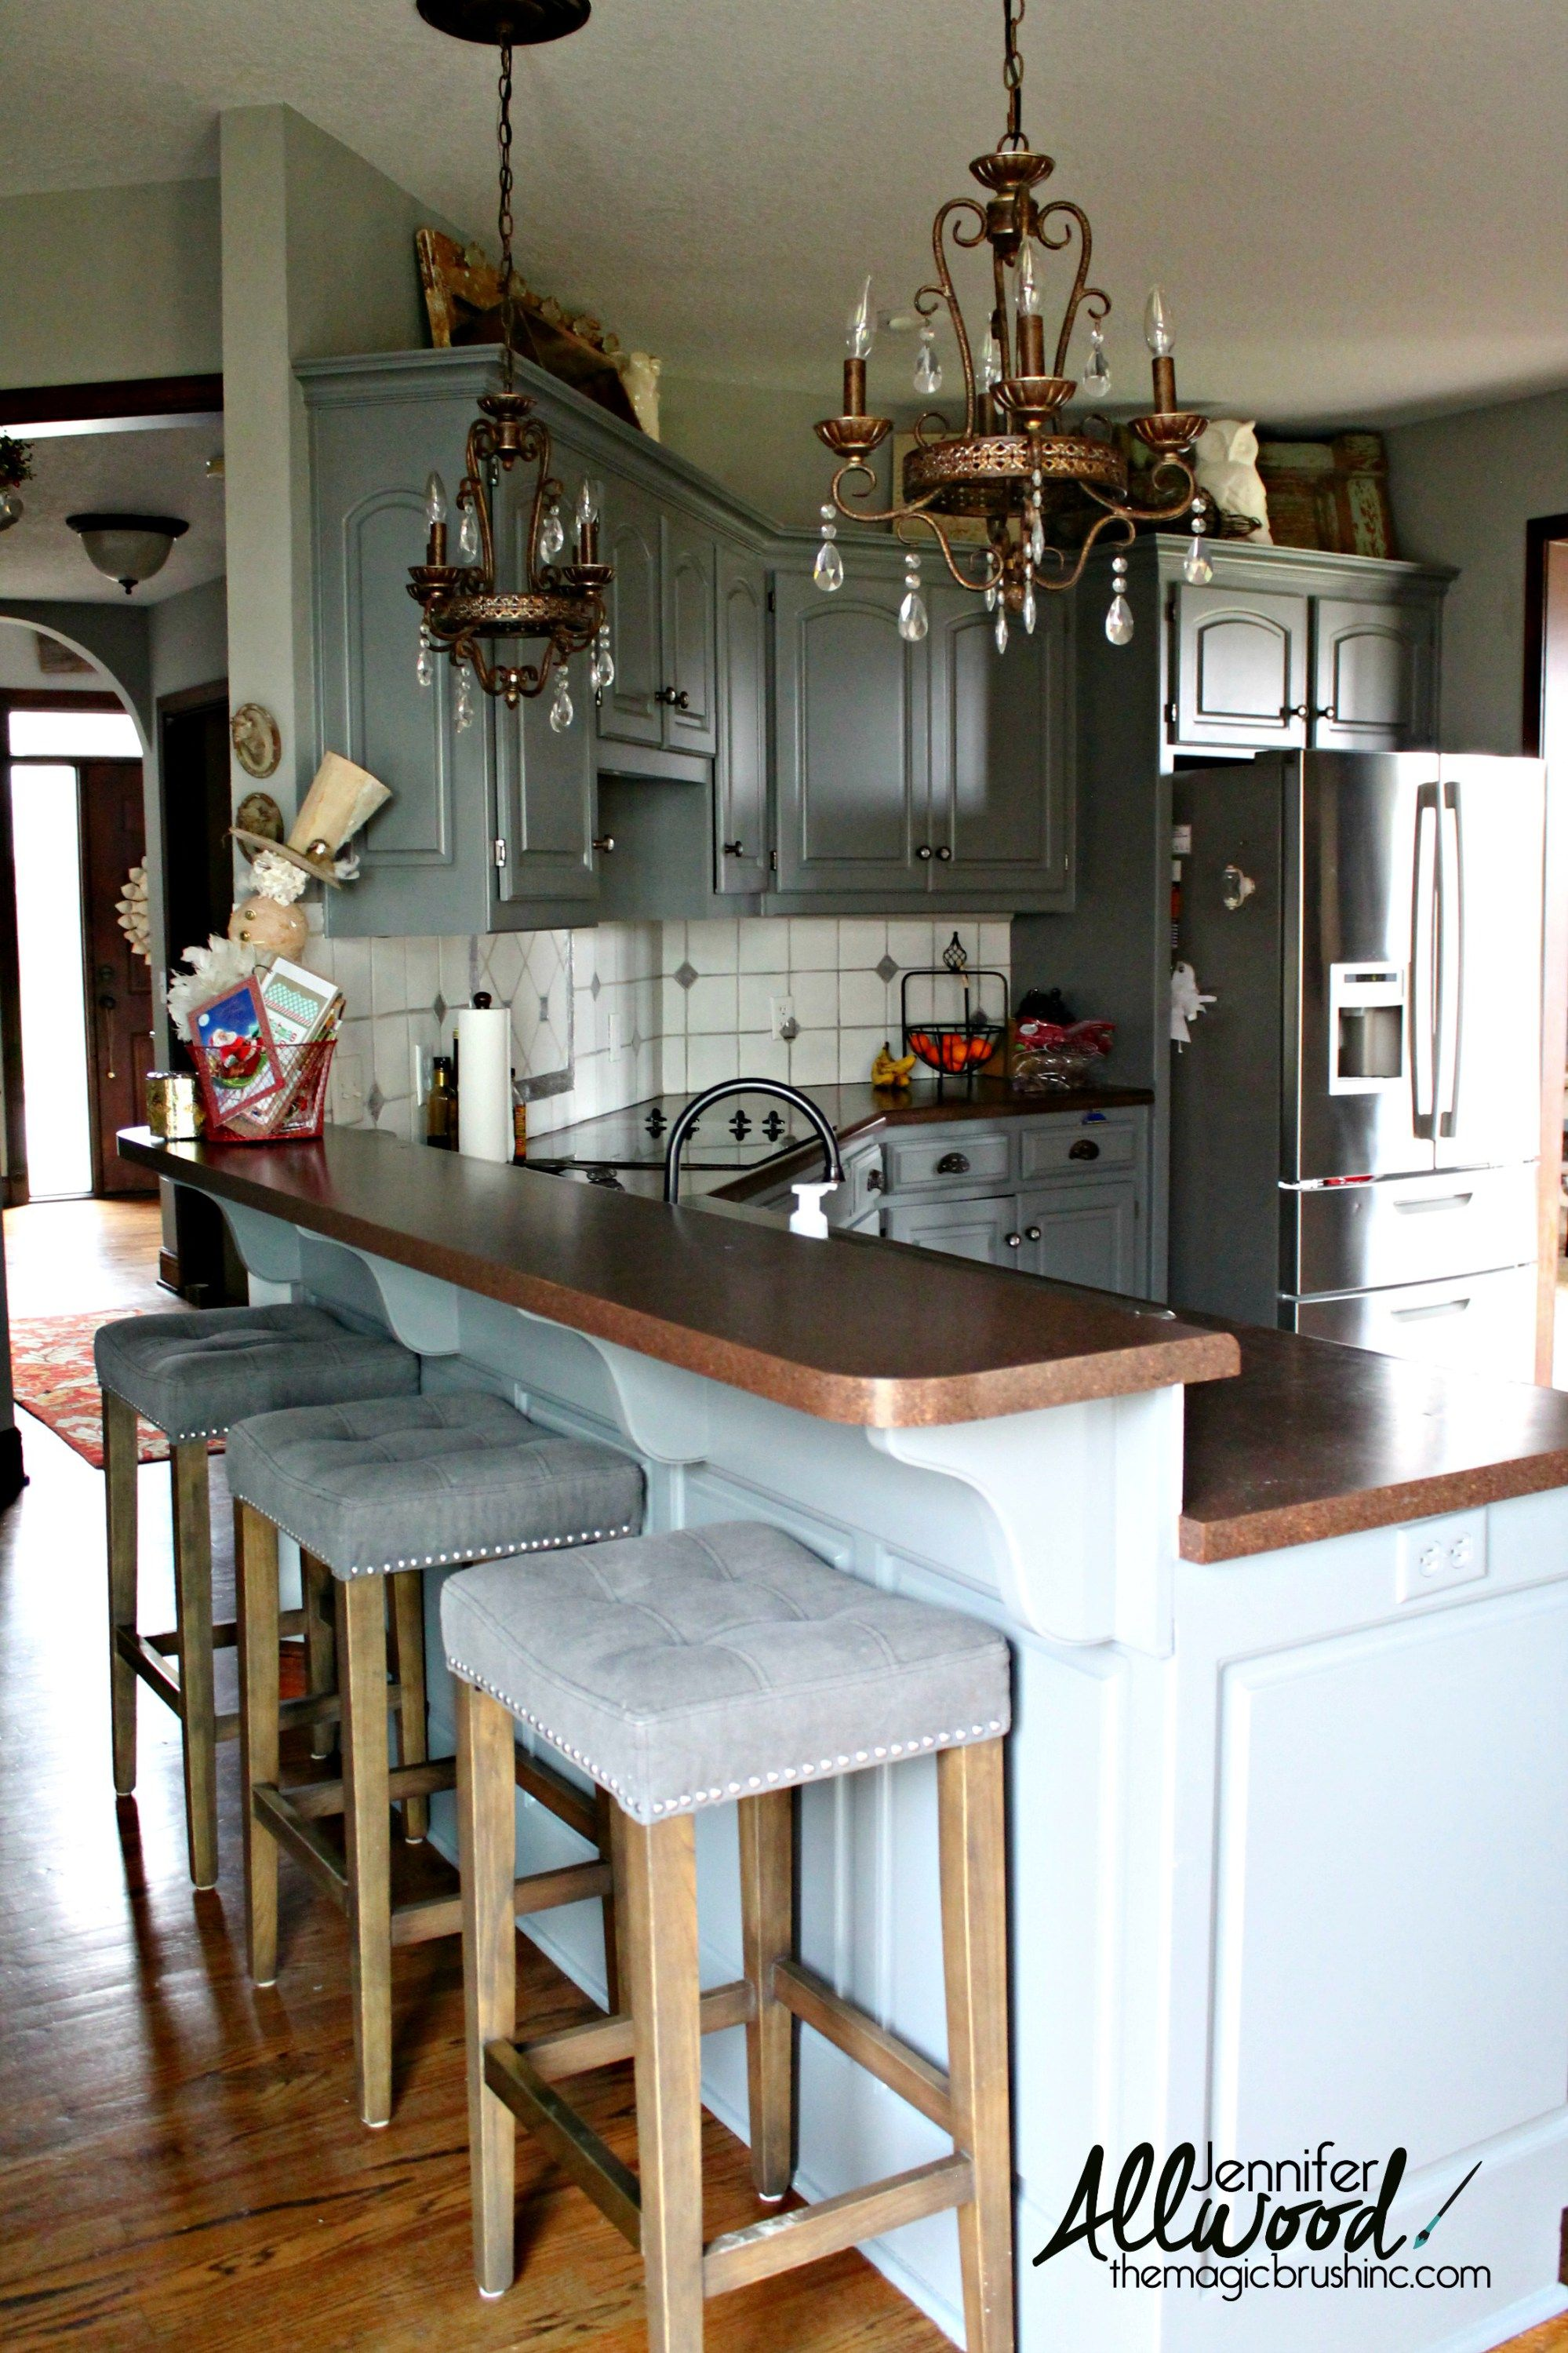 Why We Chose Silestone Countertops And To Lower Our Kitchen Bar Kitchen Bar Lights Kitchen Remodel Silestone Countertops